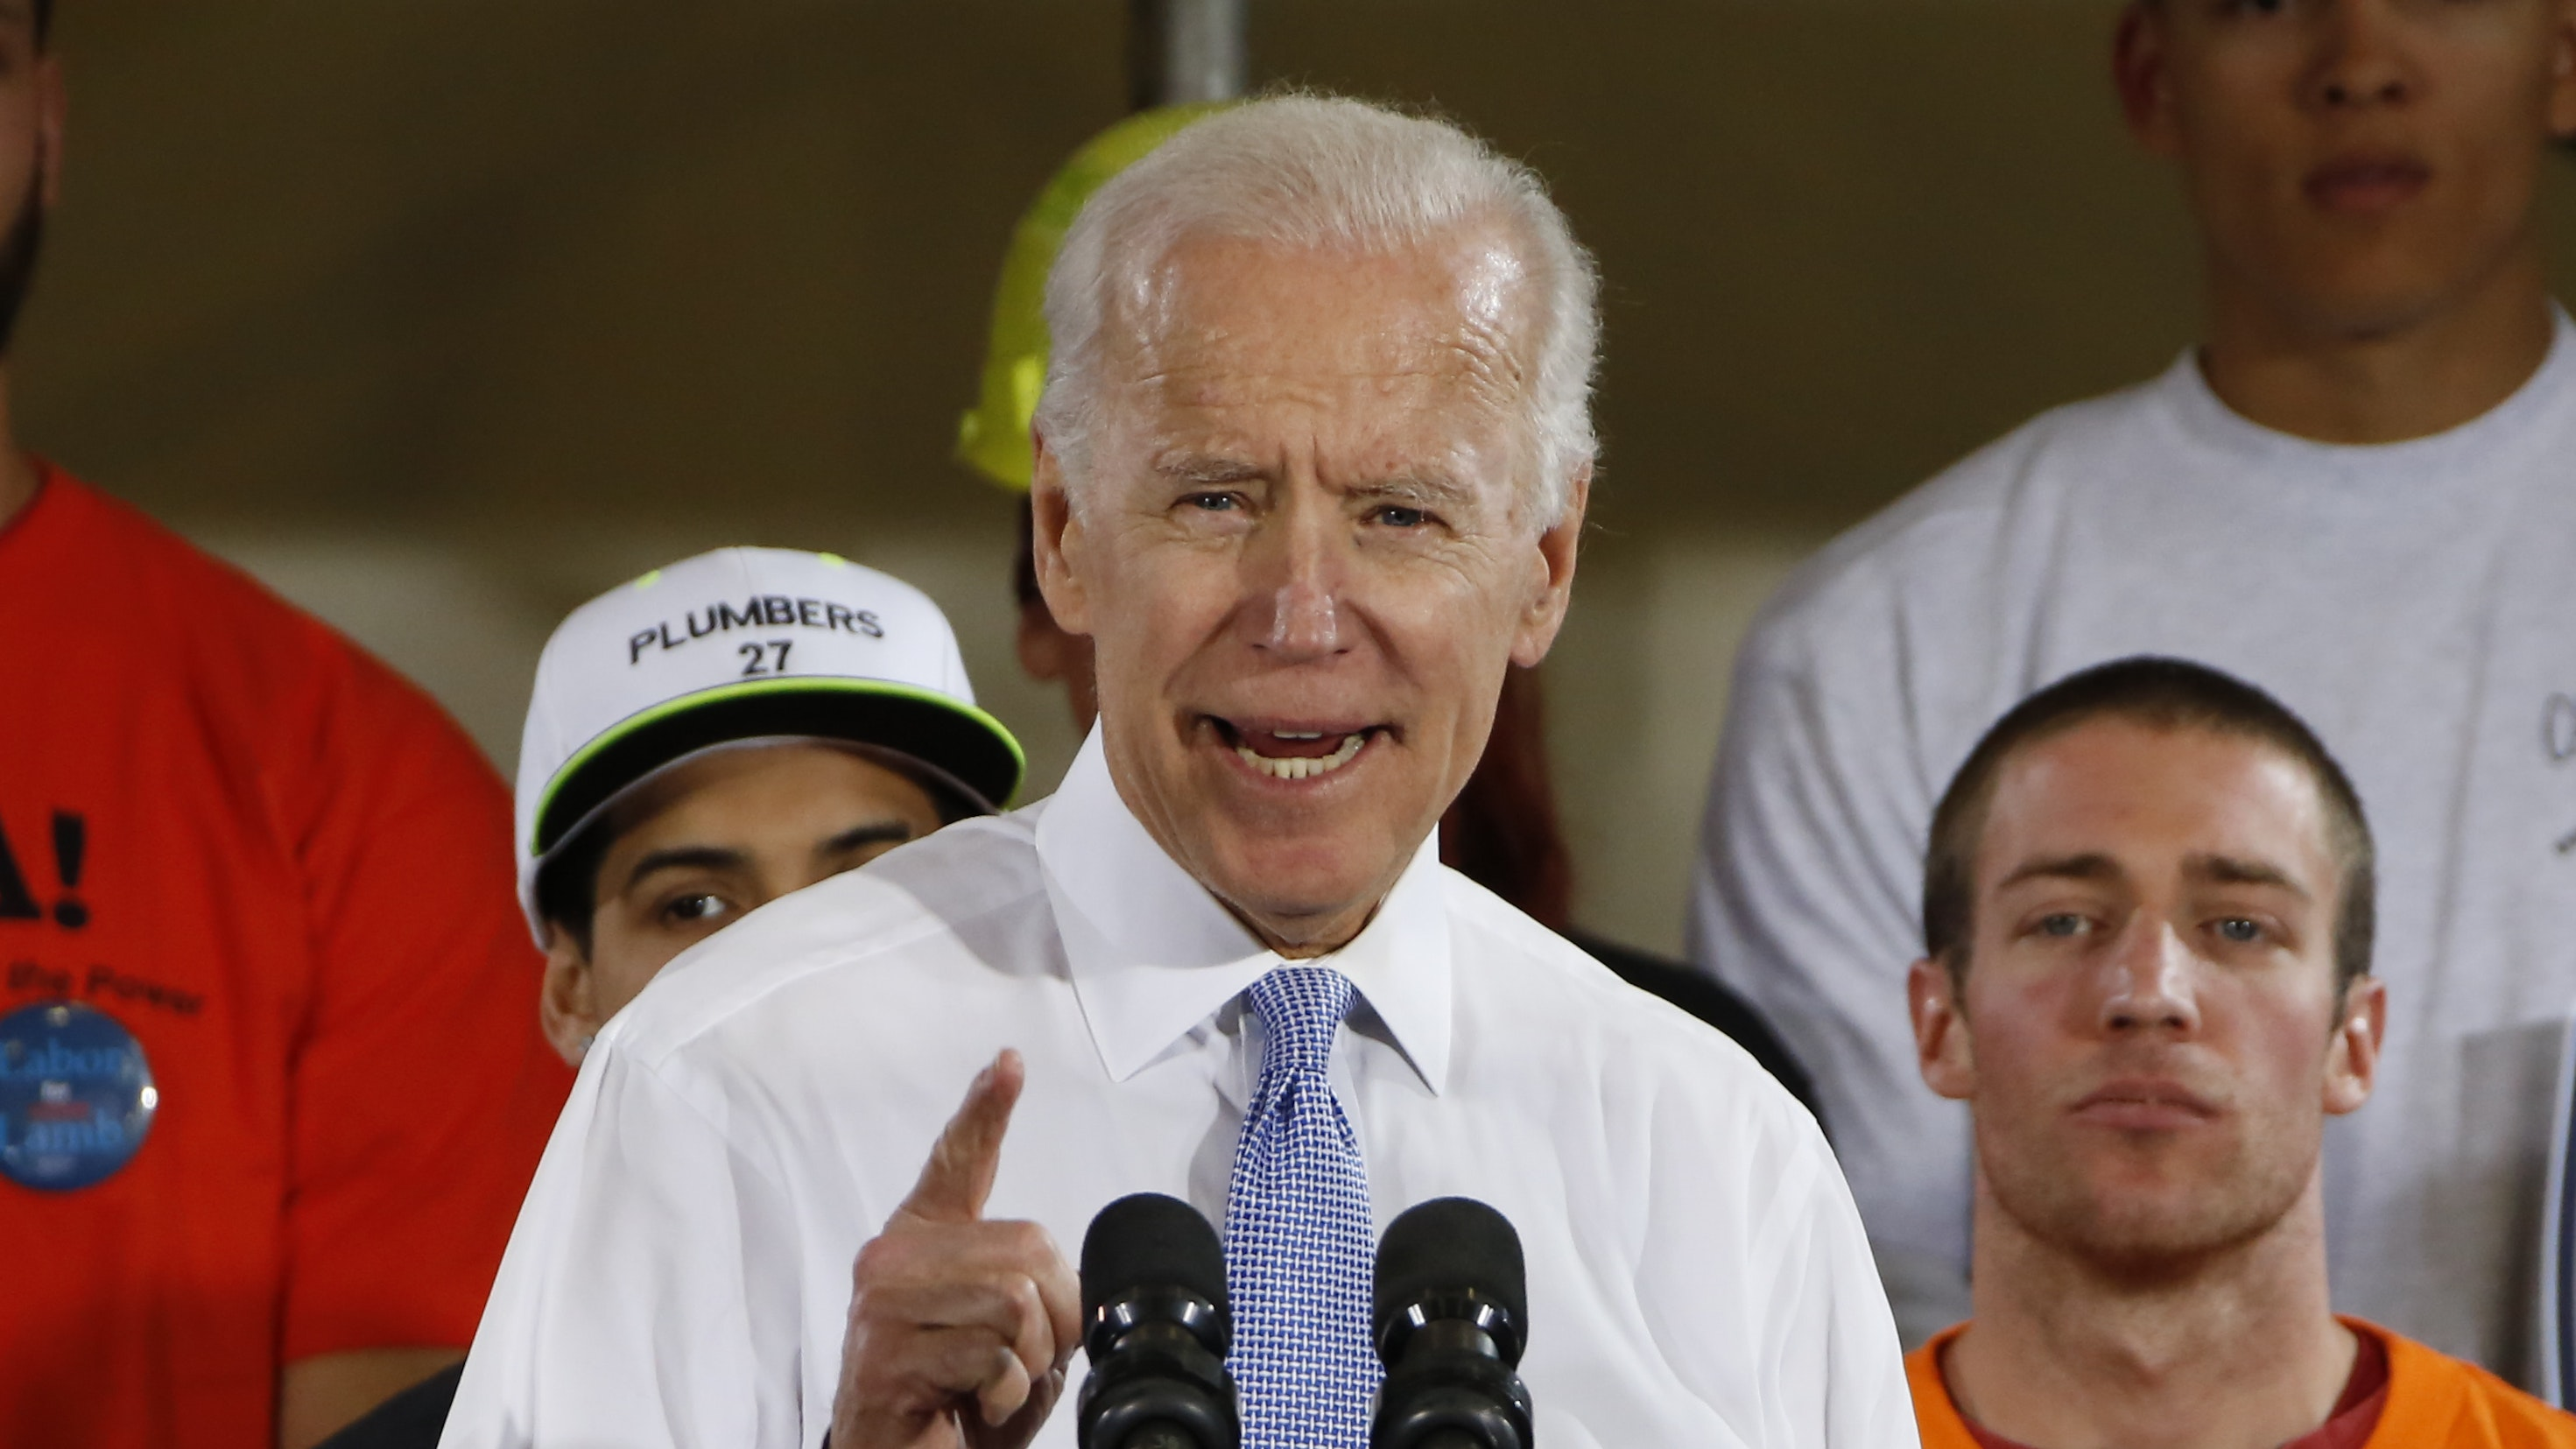 Joe Biden 'would go down fast and hard' in a fight